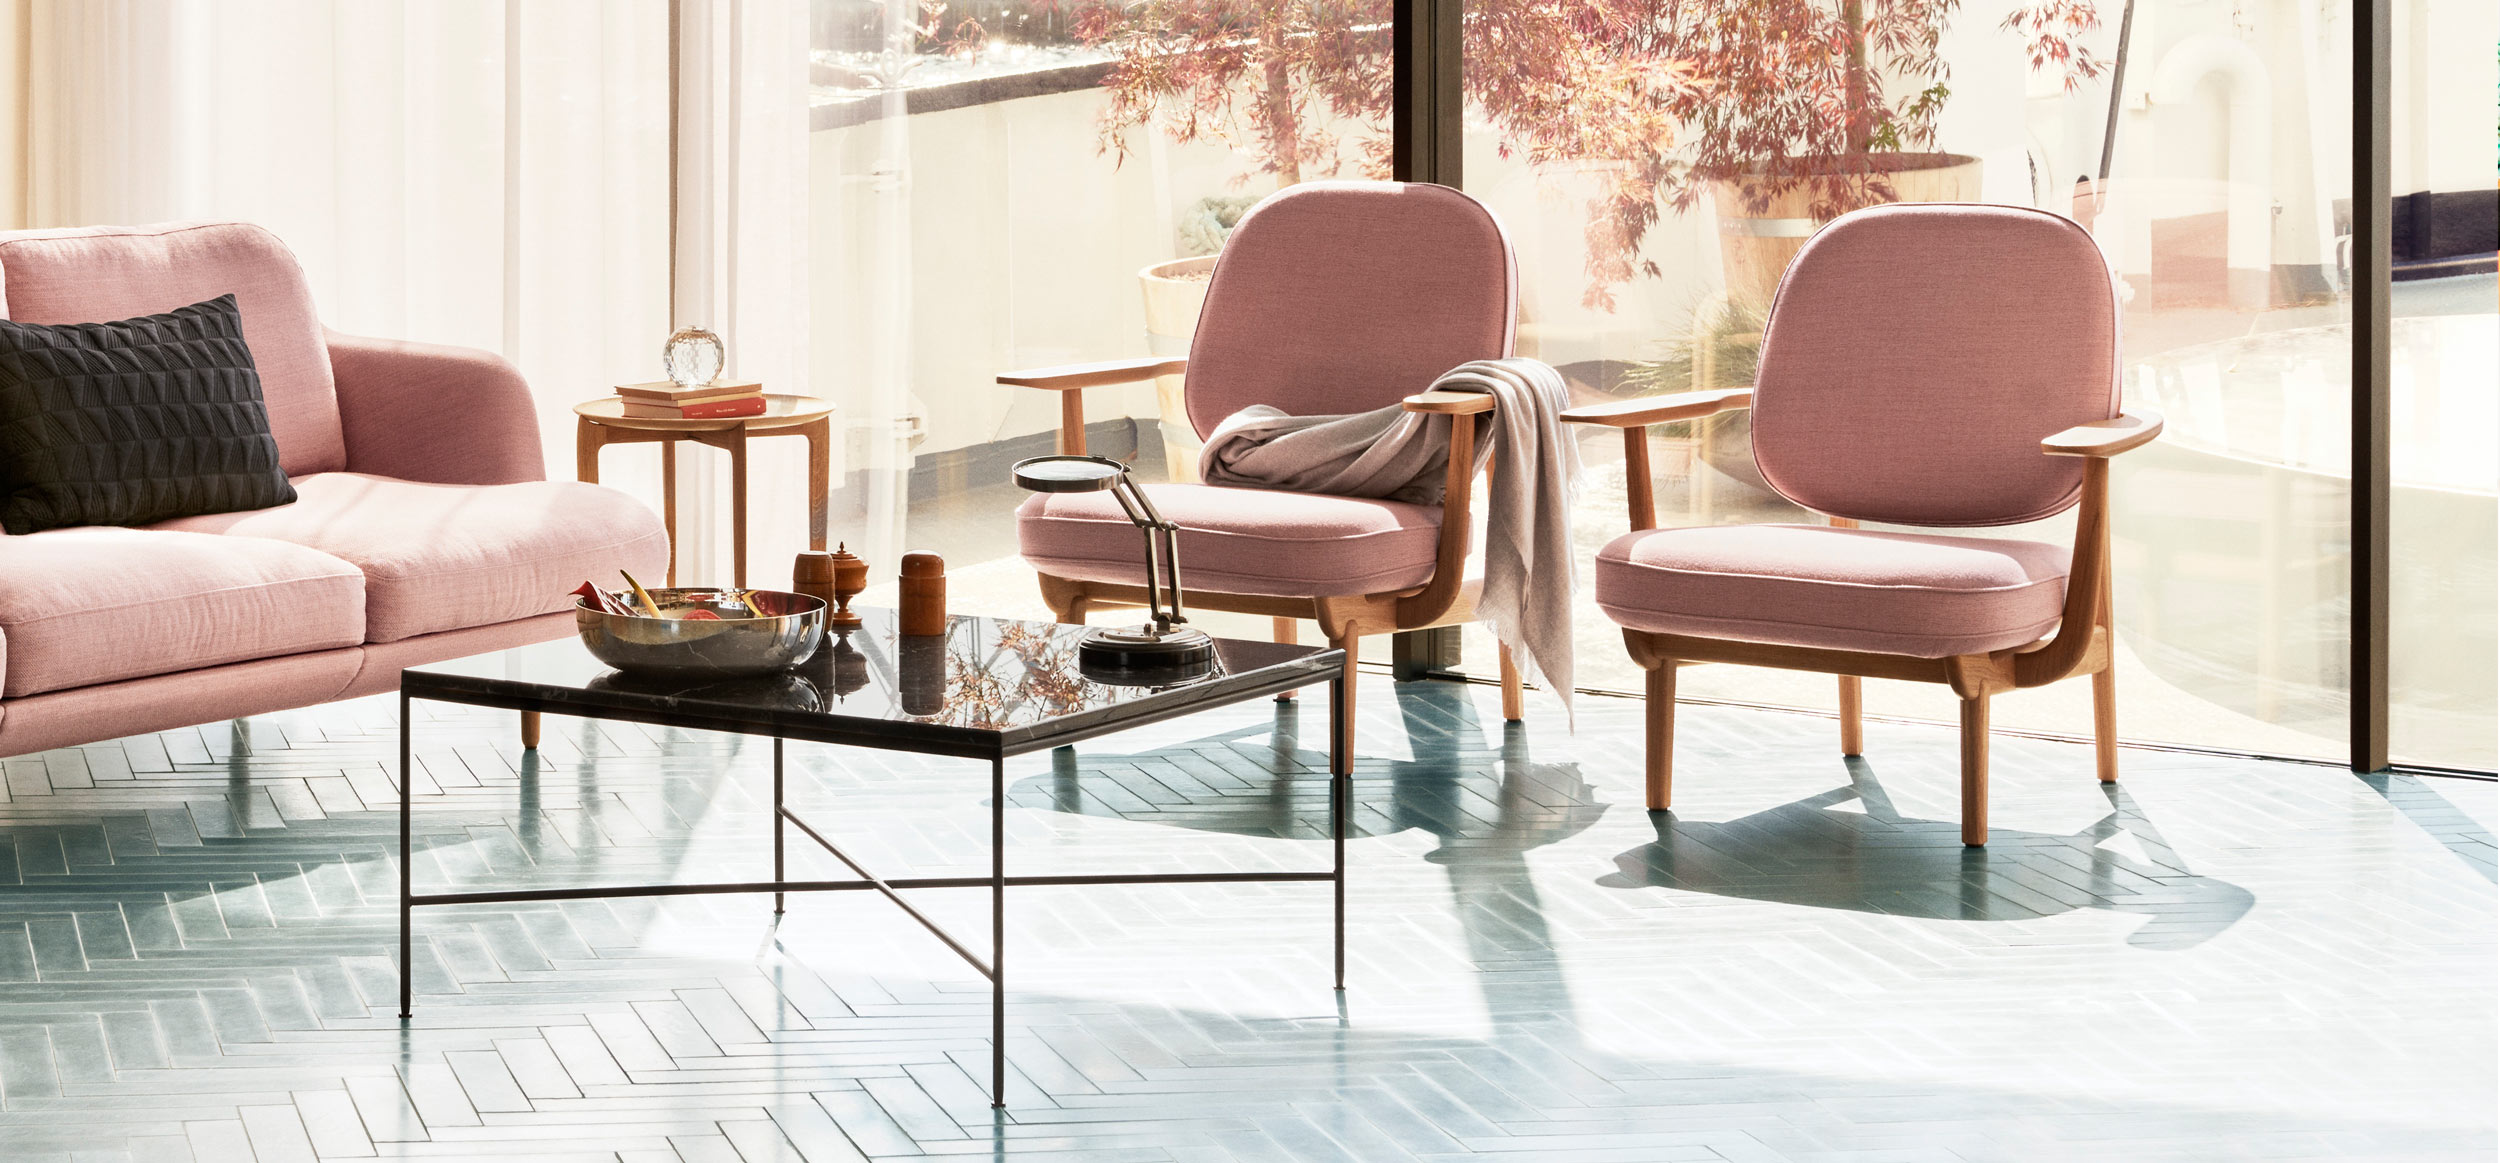 fritz hansen fred jh97 lounge chair lifestyle image